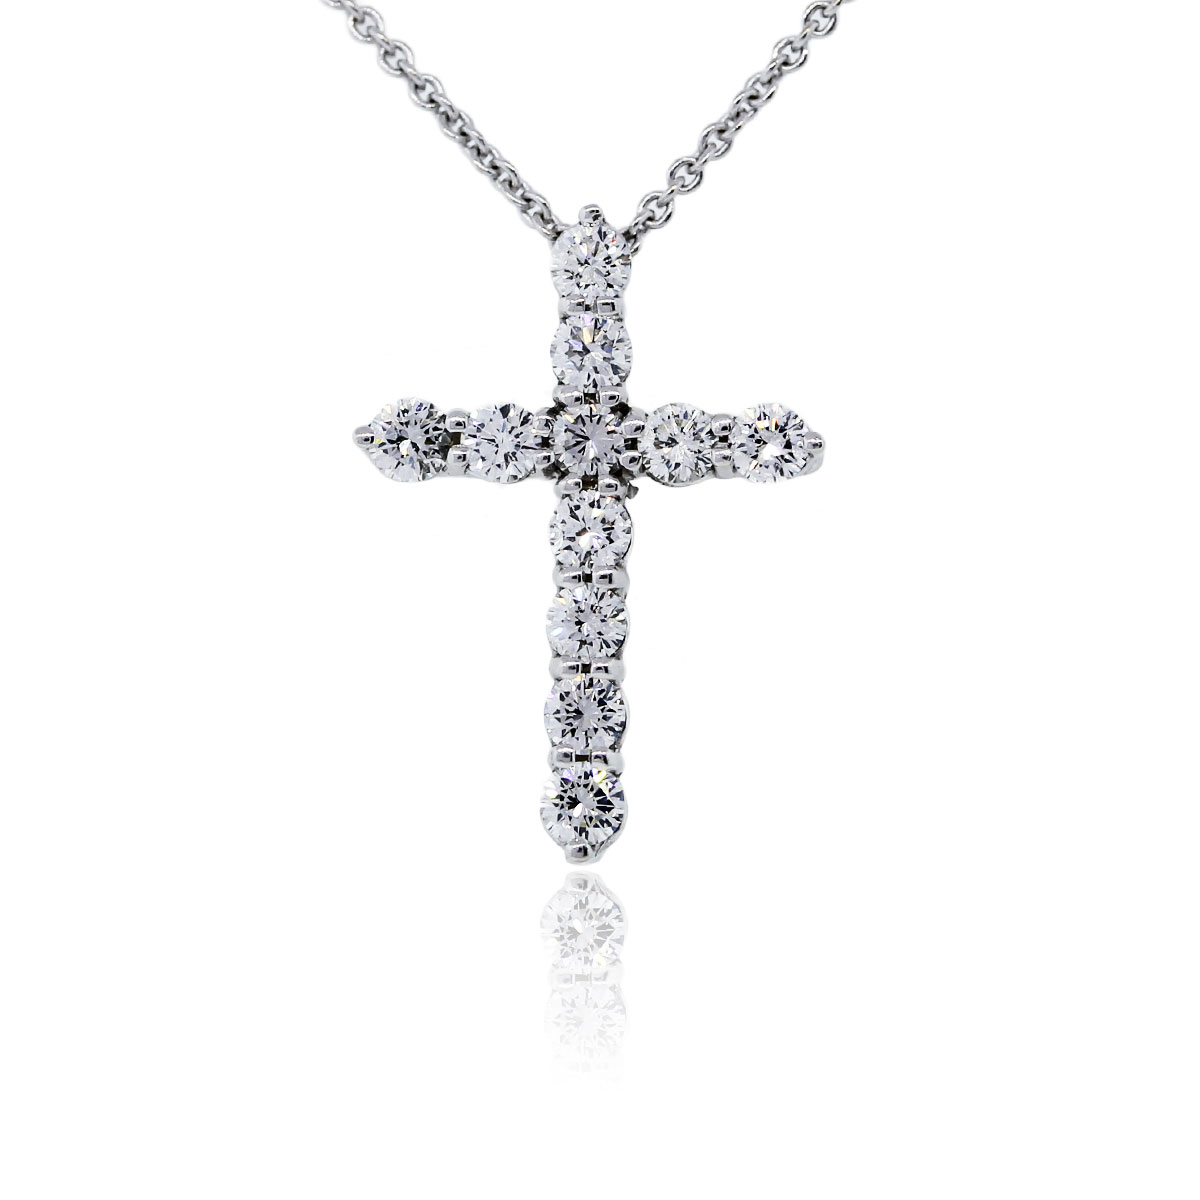 You are viewing this 18k White Gold Diamond Cross Pendant Chain Necklace!